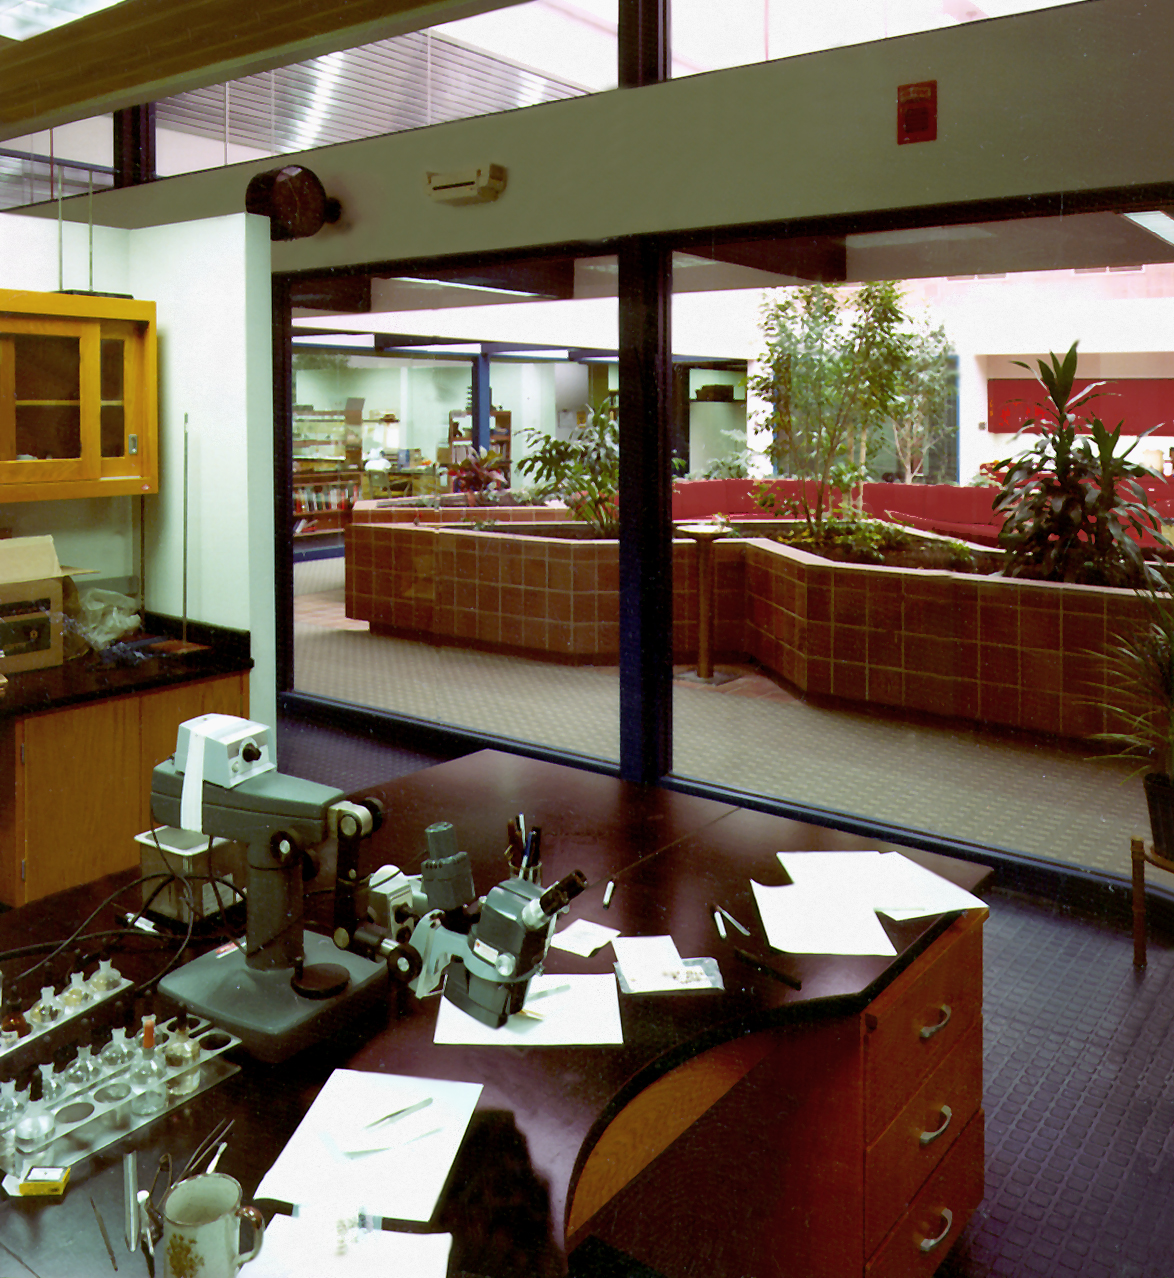 Southeast Crime Laboratory in Milwaukee, Wisconsin.